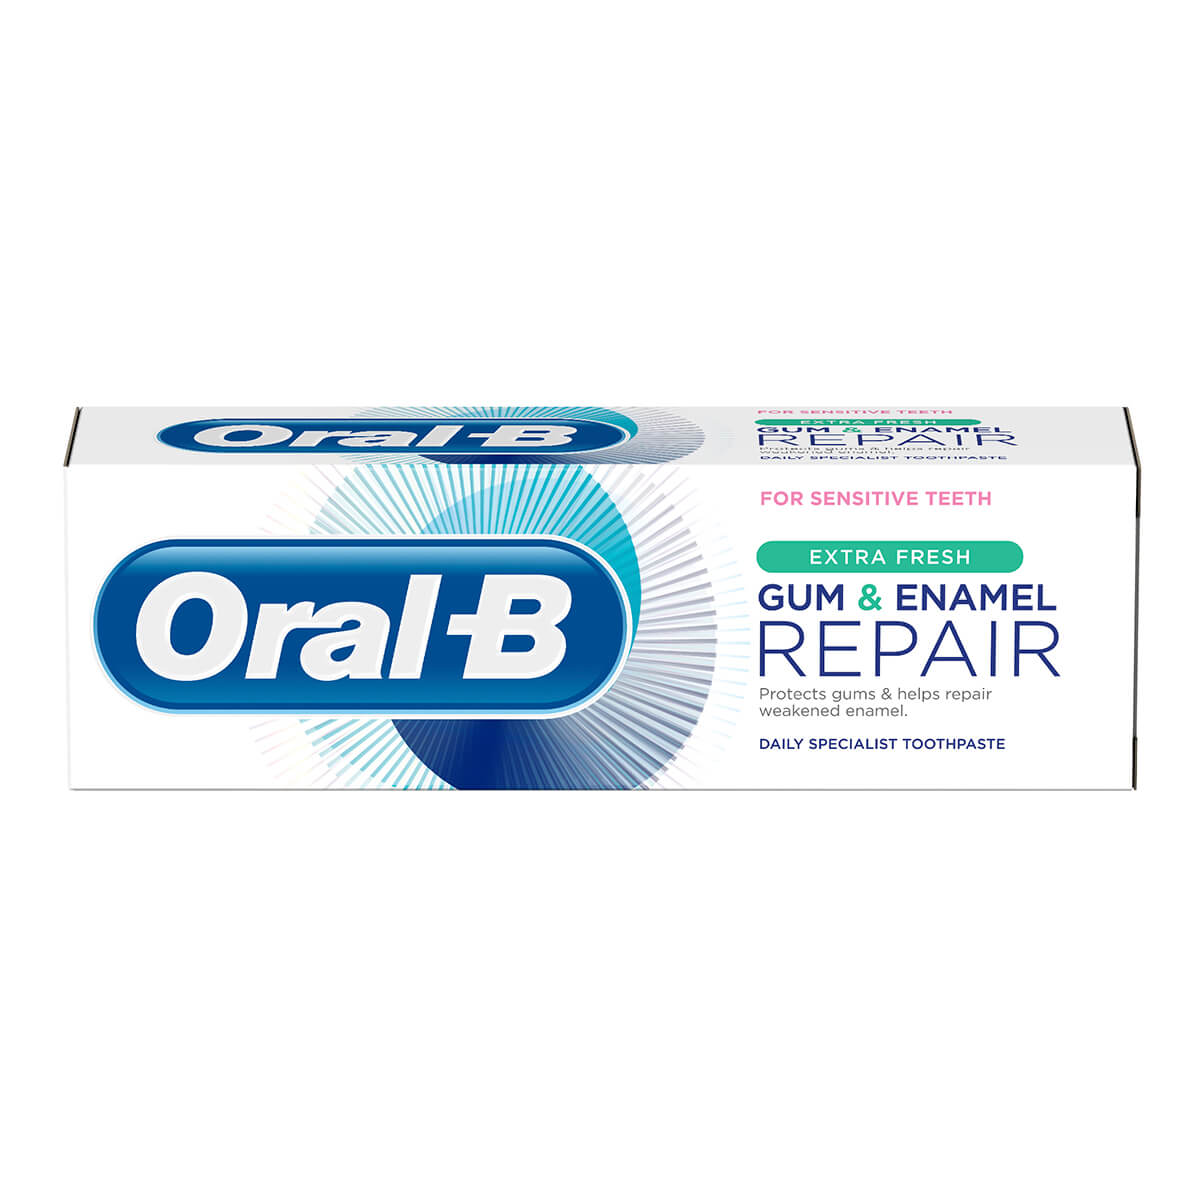 Oral-B Gum & Enamel Repair Extra Fresh toothpaste